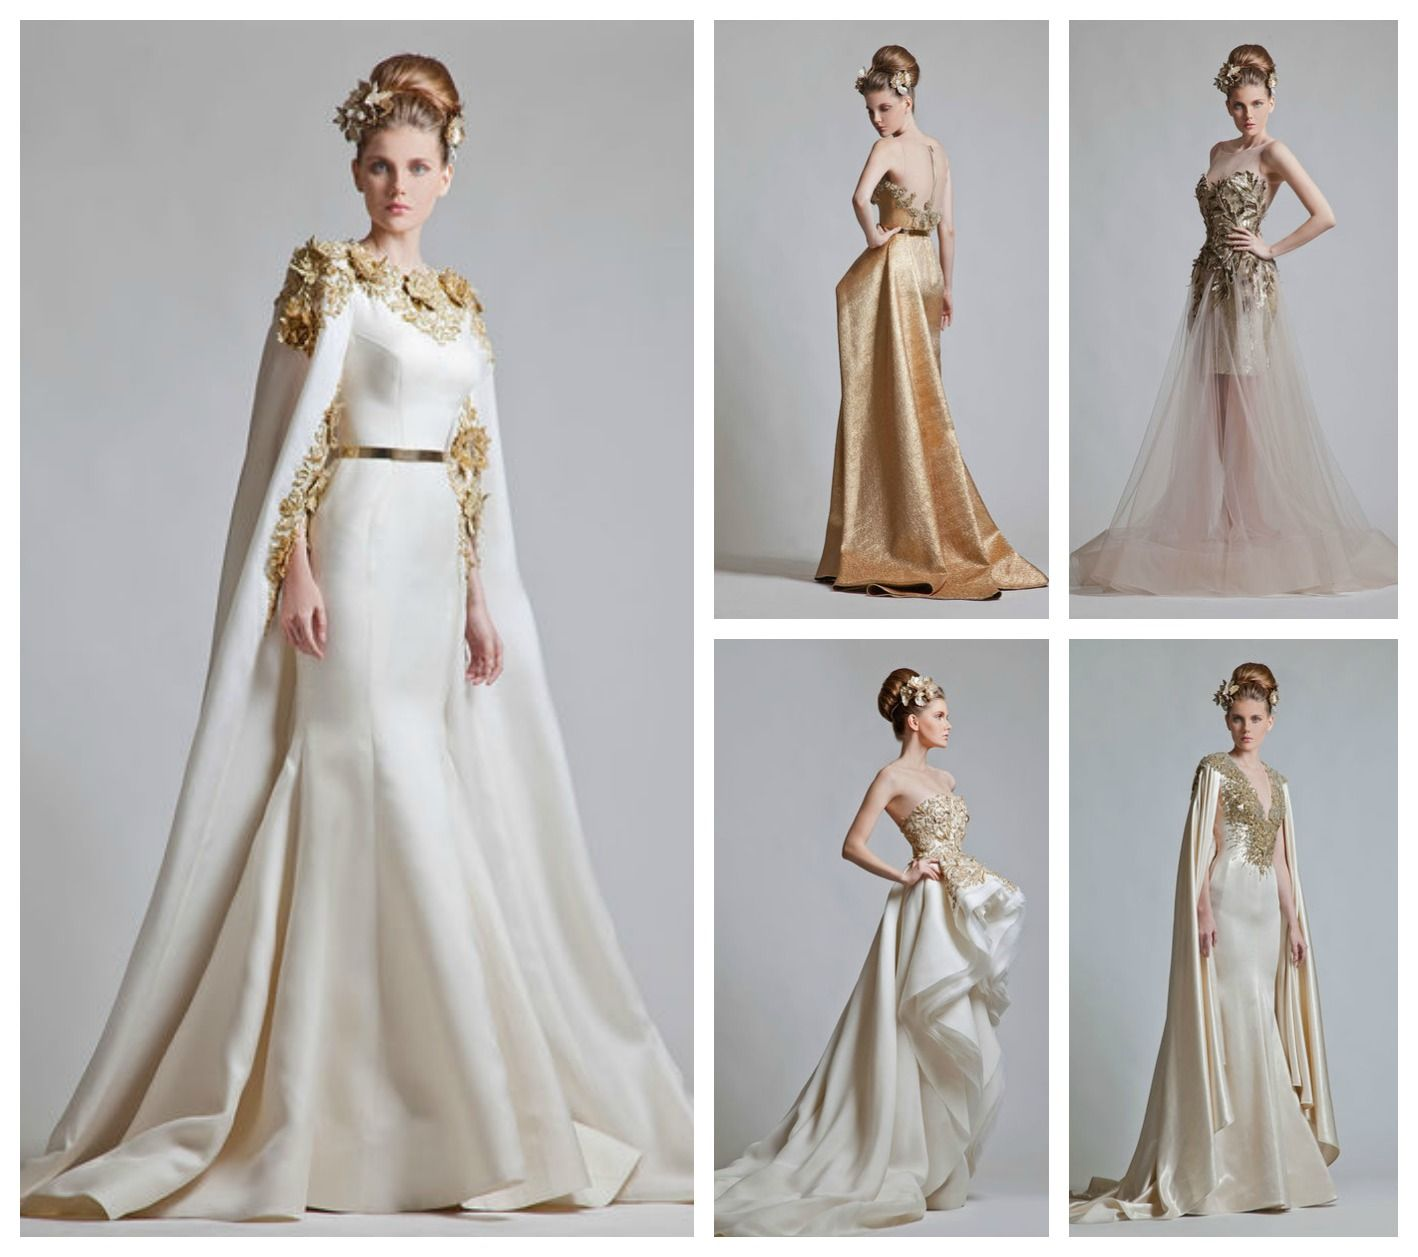 greek wedding dresses Socially Smart and Savvy Ancient Roman Inspiration The Bridal Outfit swan maiden dresses